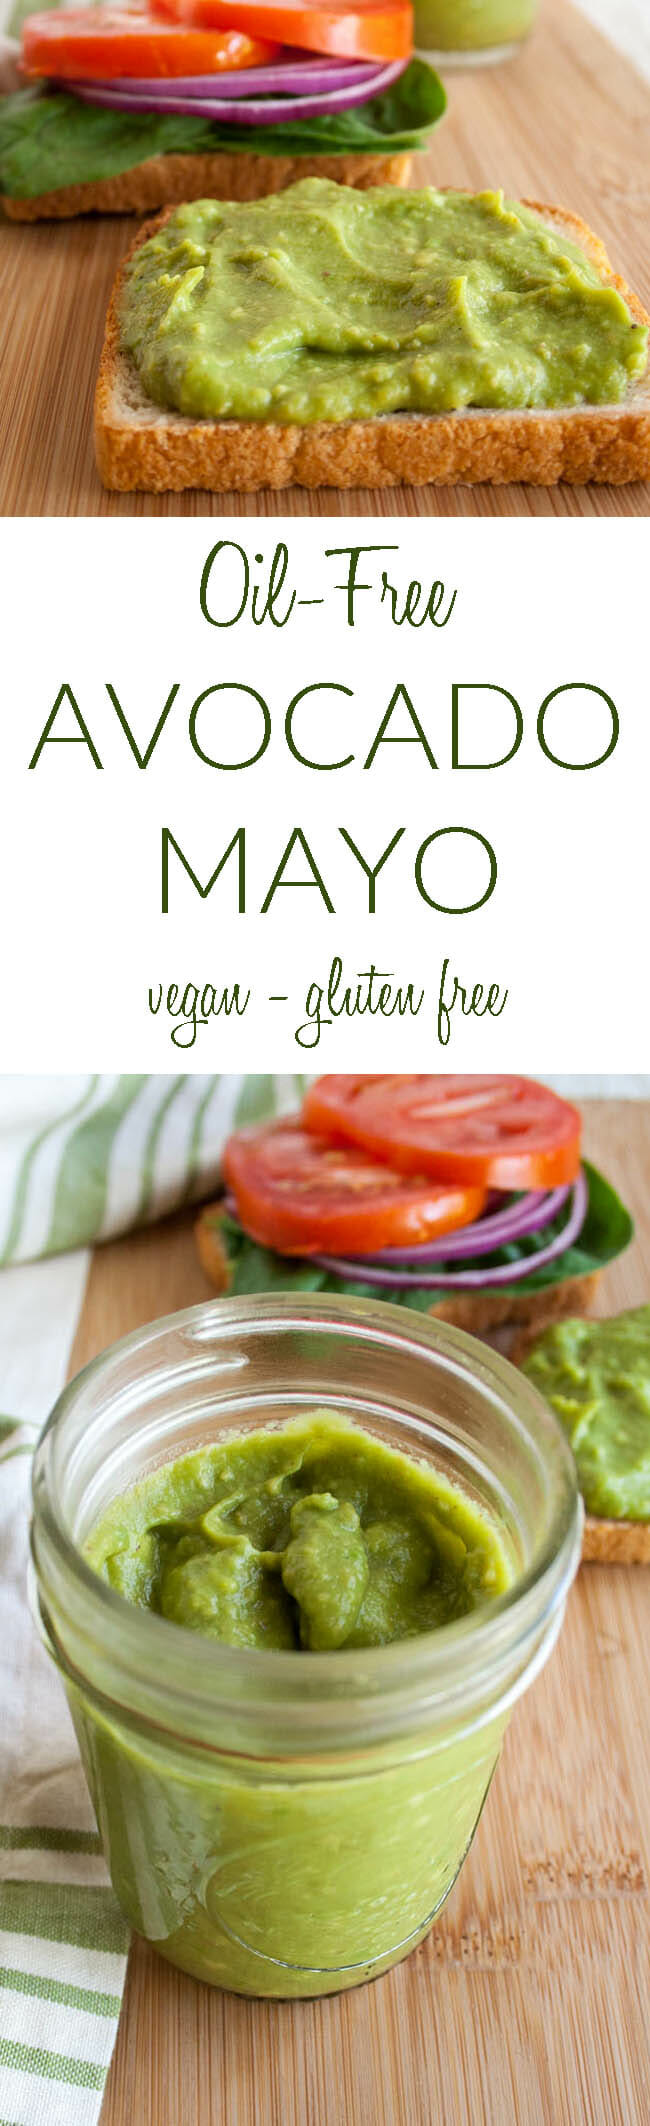 Oil-Free Avocado Mayo collage photo with text.